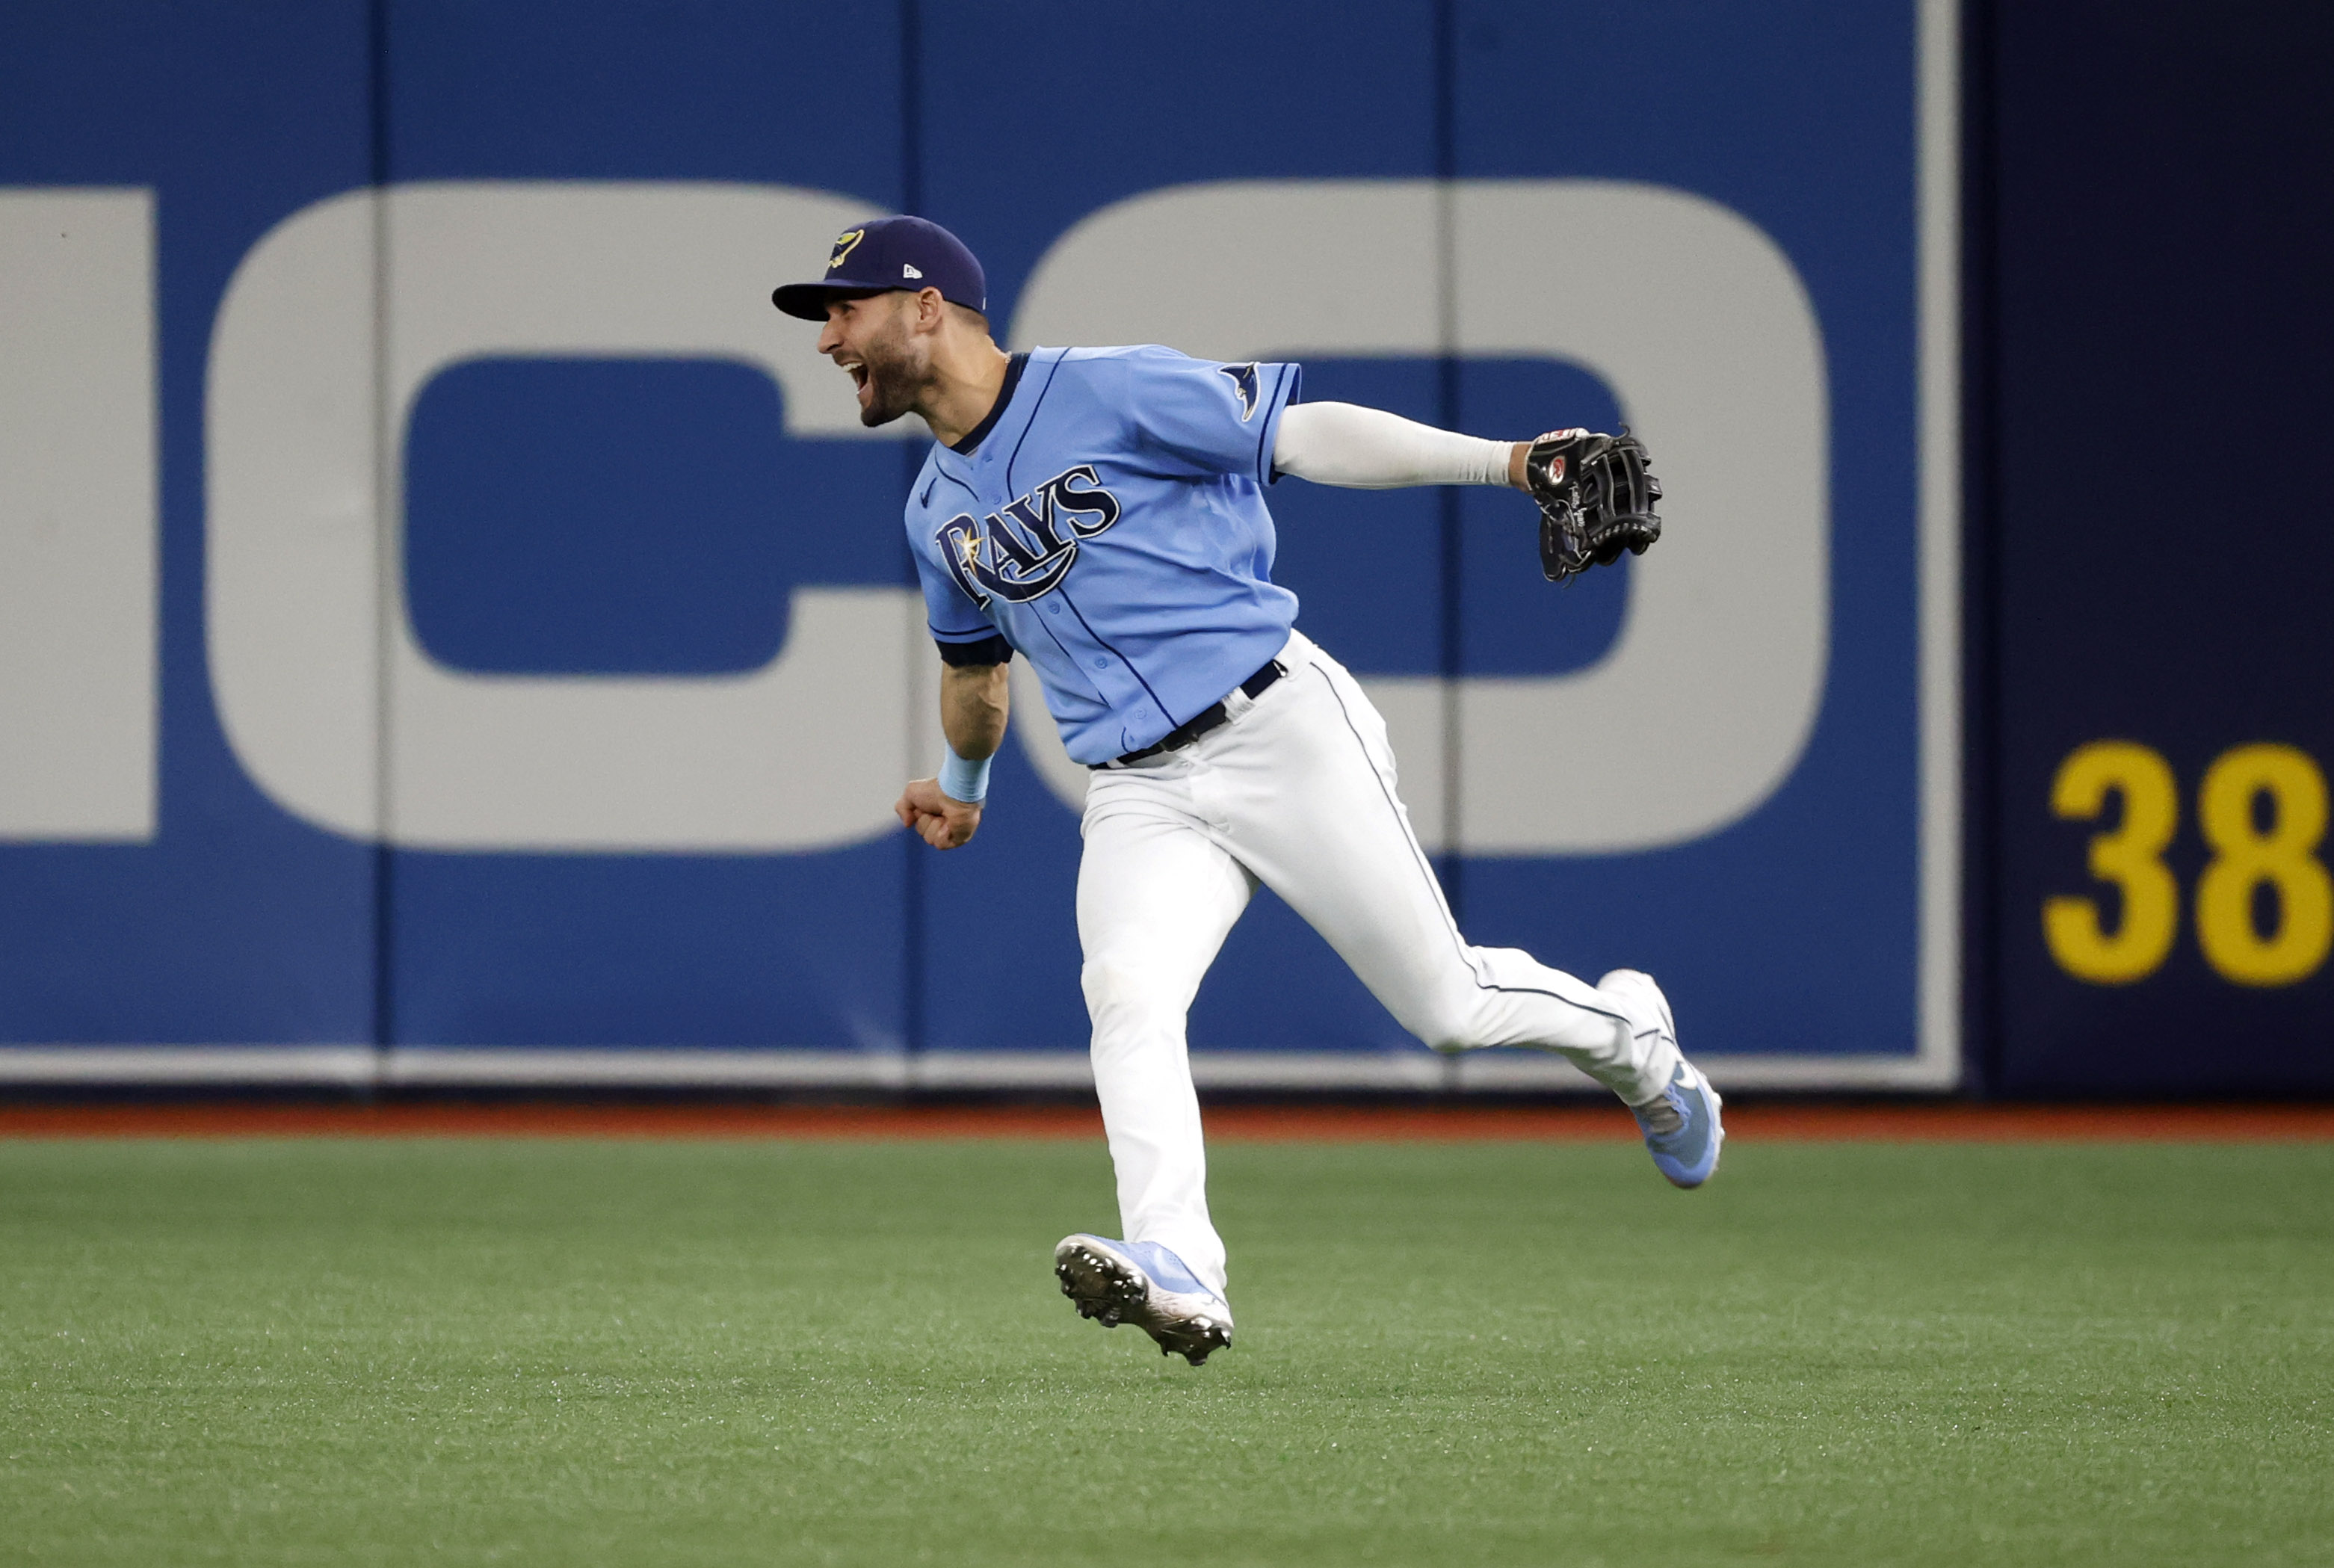 Aug 1, 2021; St. Petersburg, Florida, USA;Tampa Bay Rays center fielder Kevin Kiermaier (39) celebrates after defeating the Boston Red Sox at Tropicana Field. Mandatory Credit: Kim Klement-USA TODAY Sports